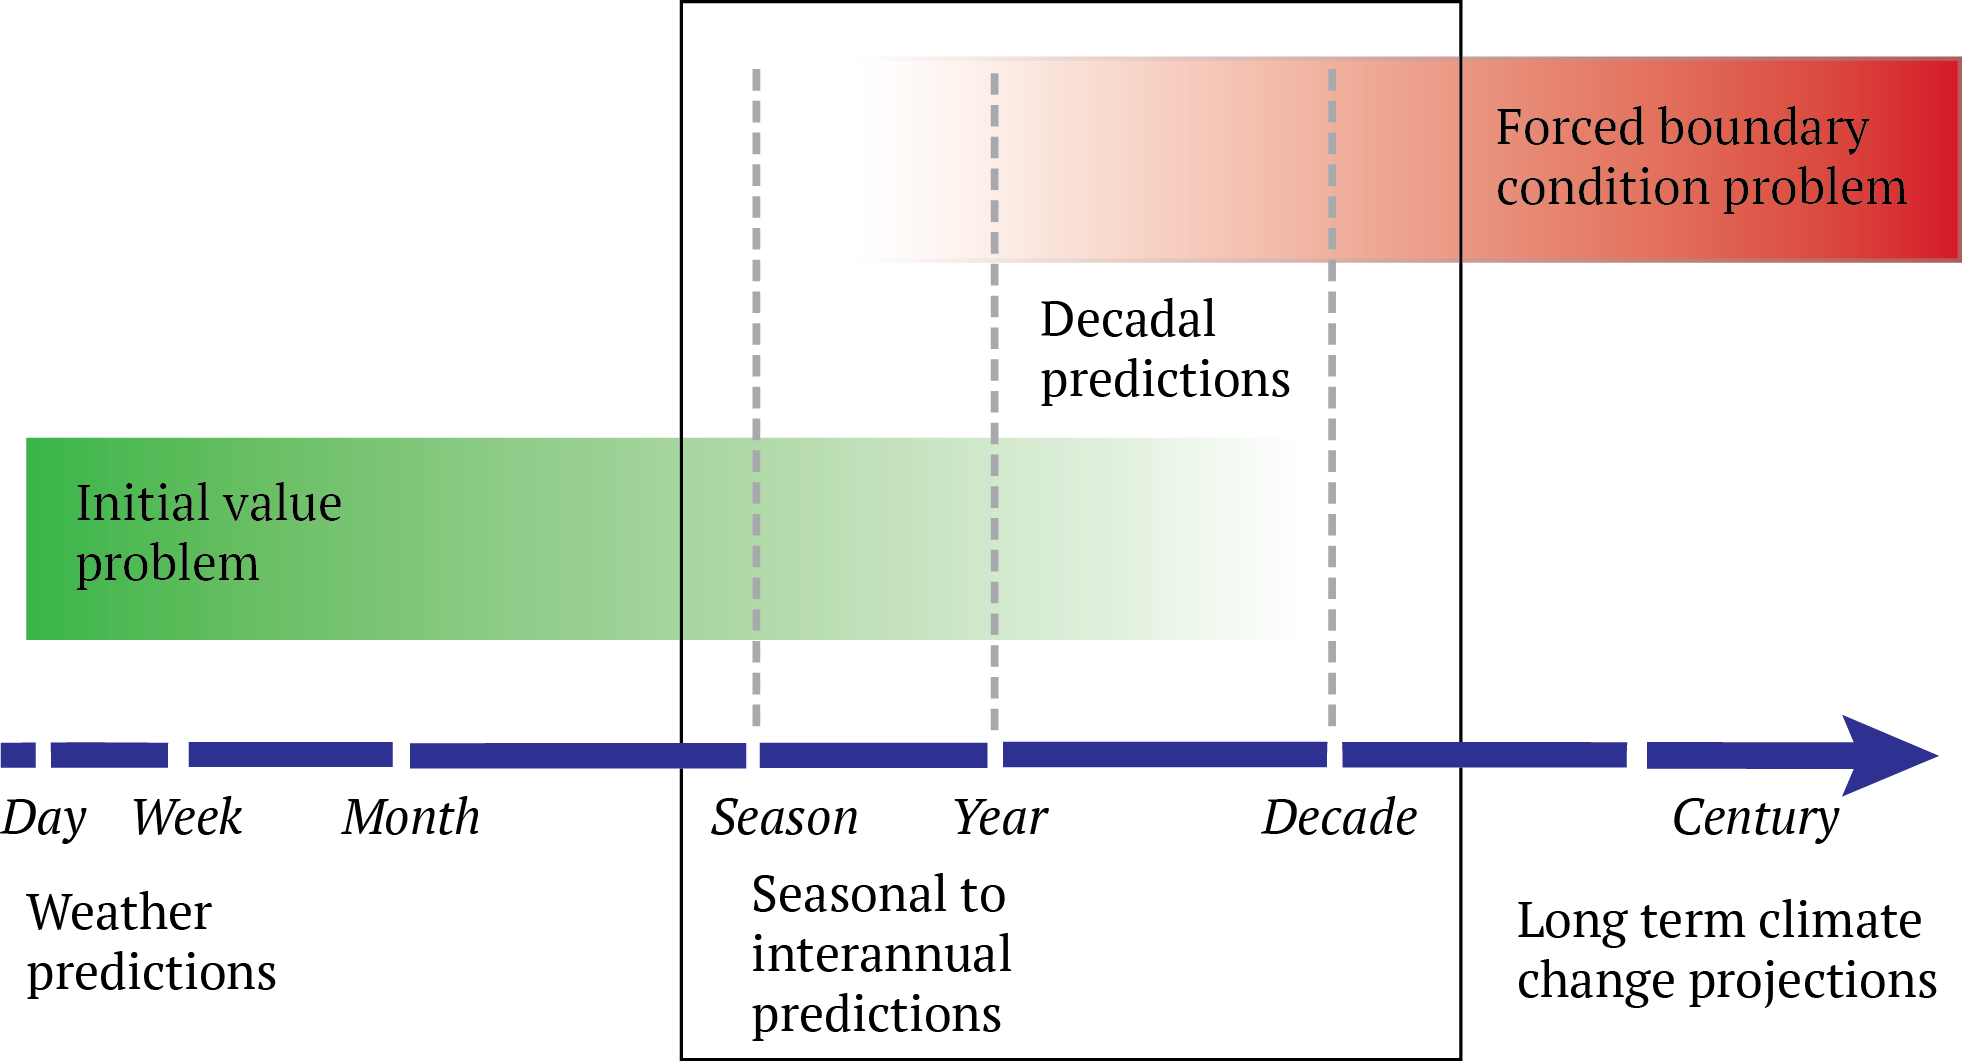 Decadal predictions